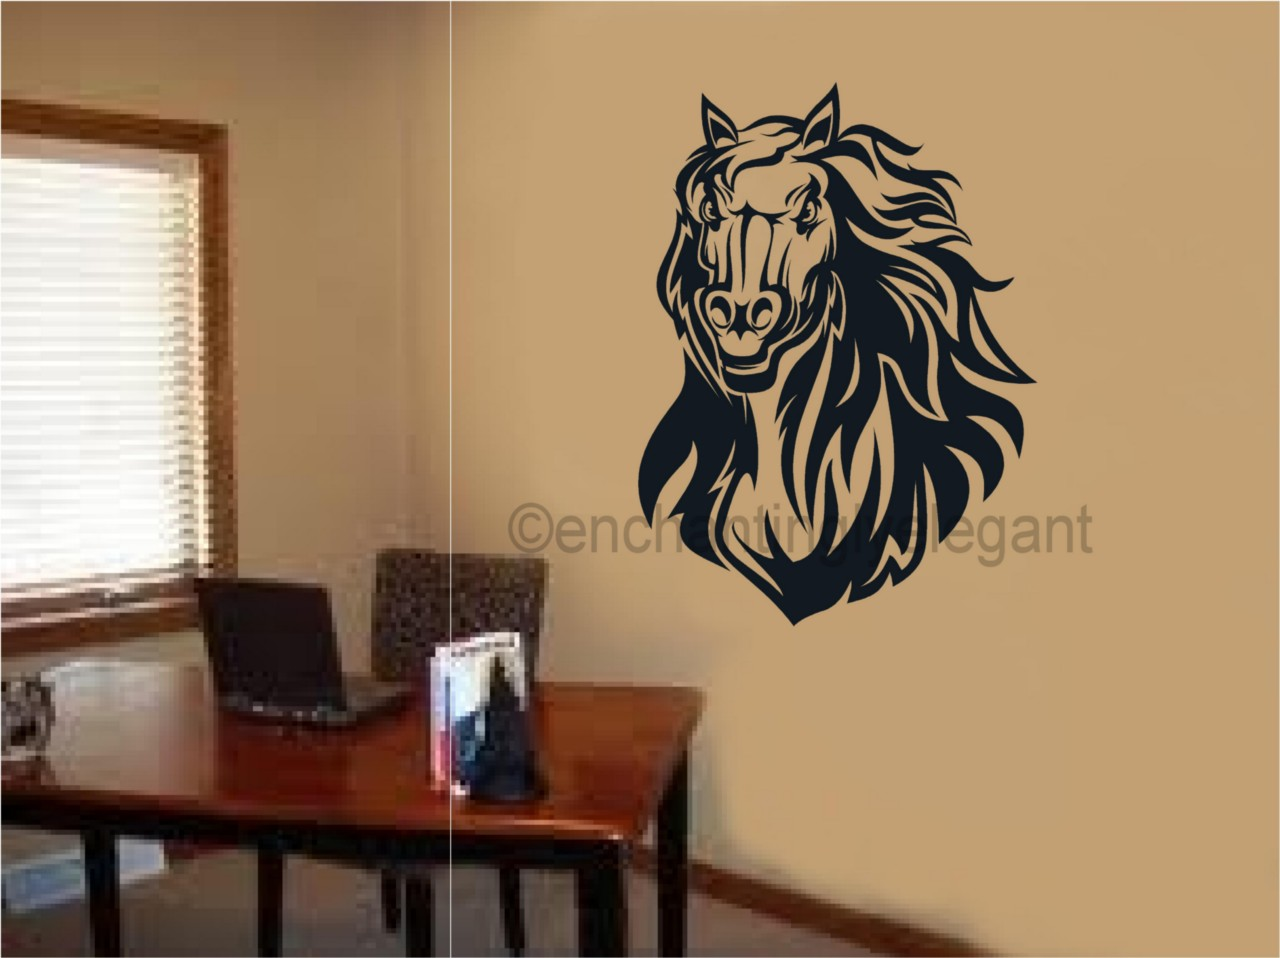 Horse vinyl decal wall sticker mural art kid room office for Decals for rv mural